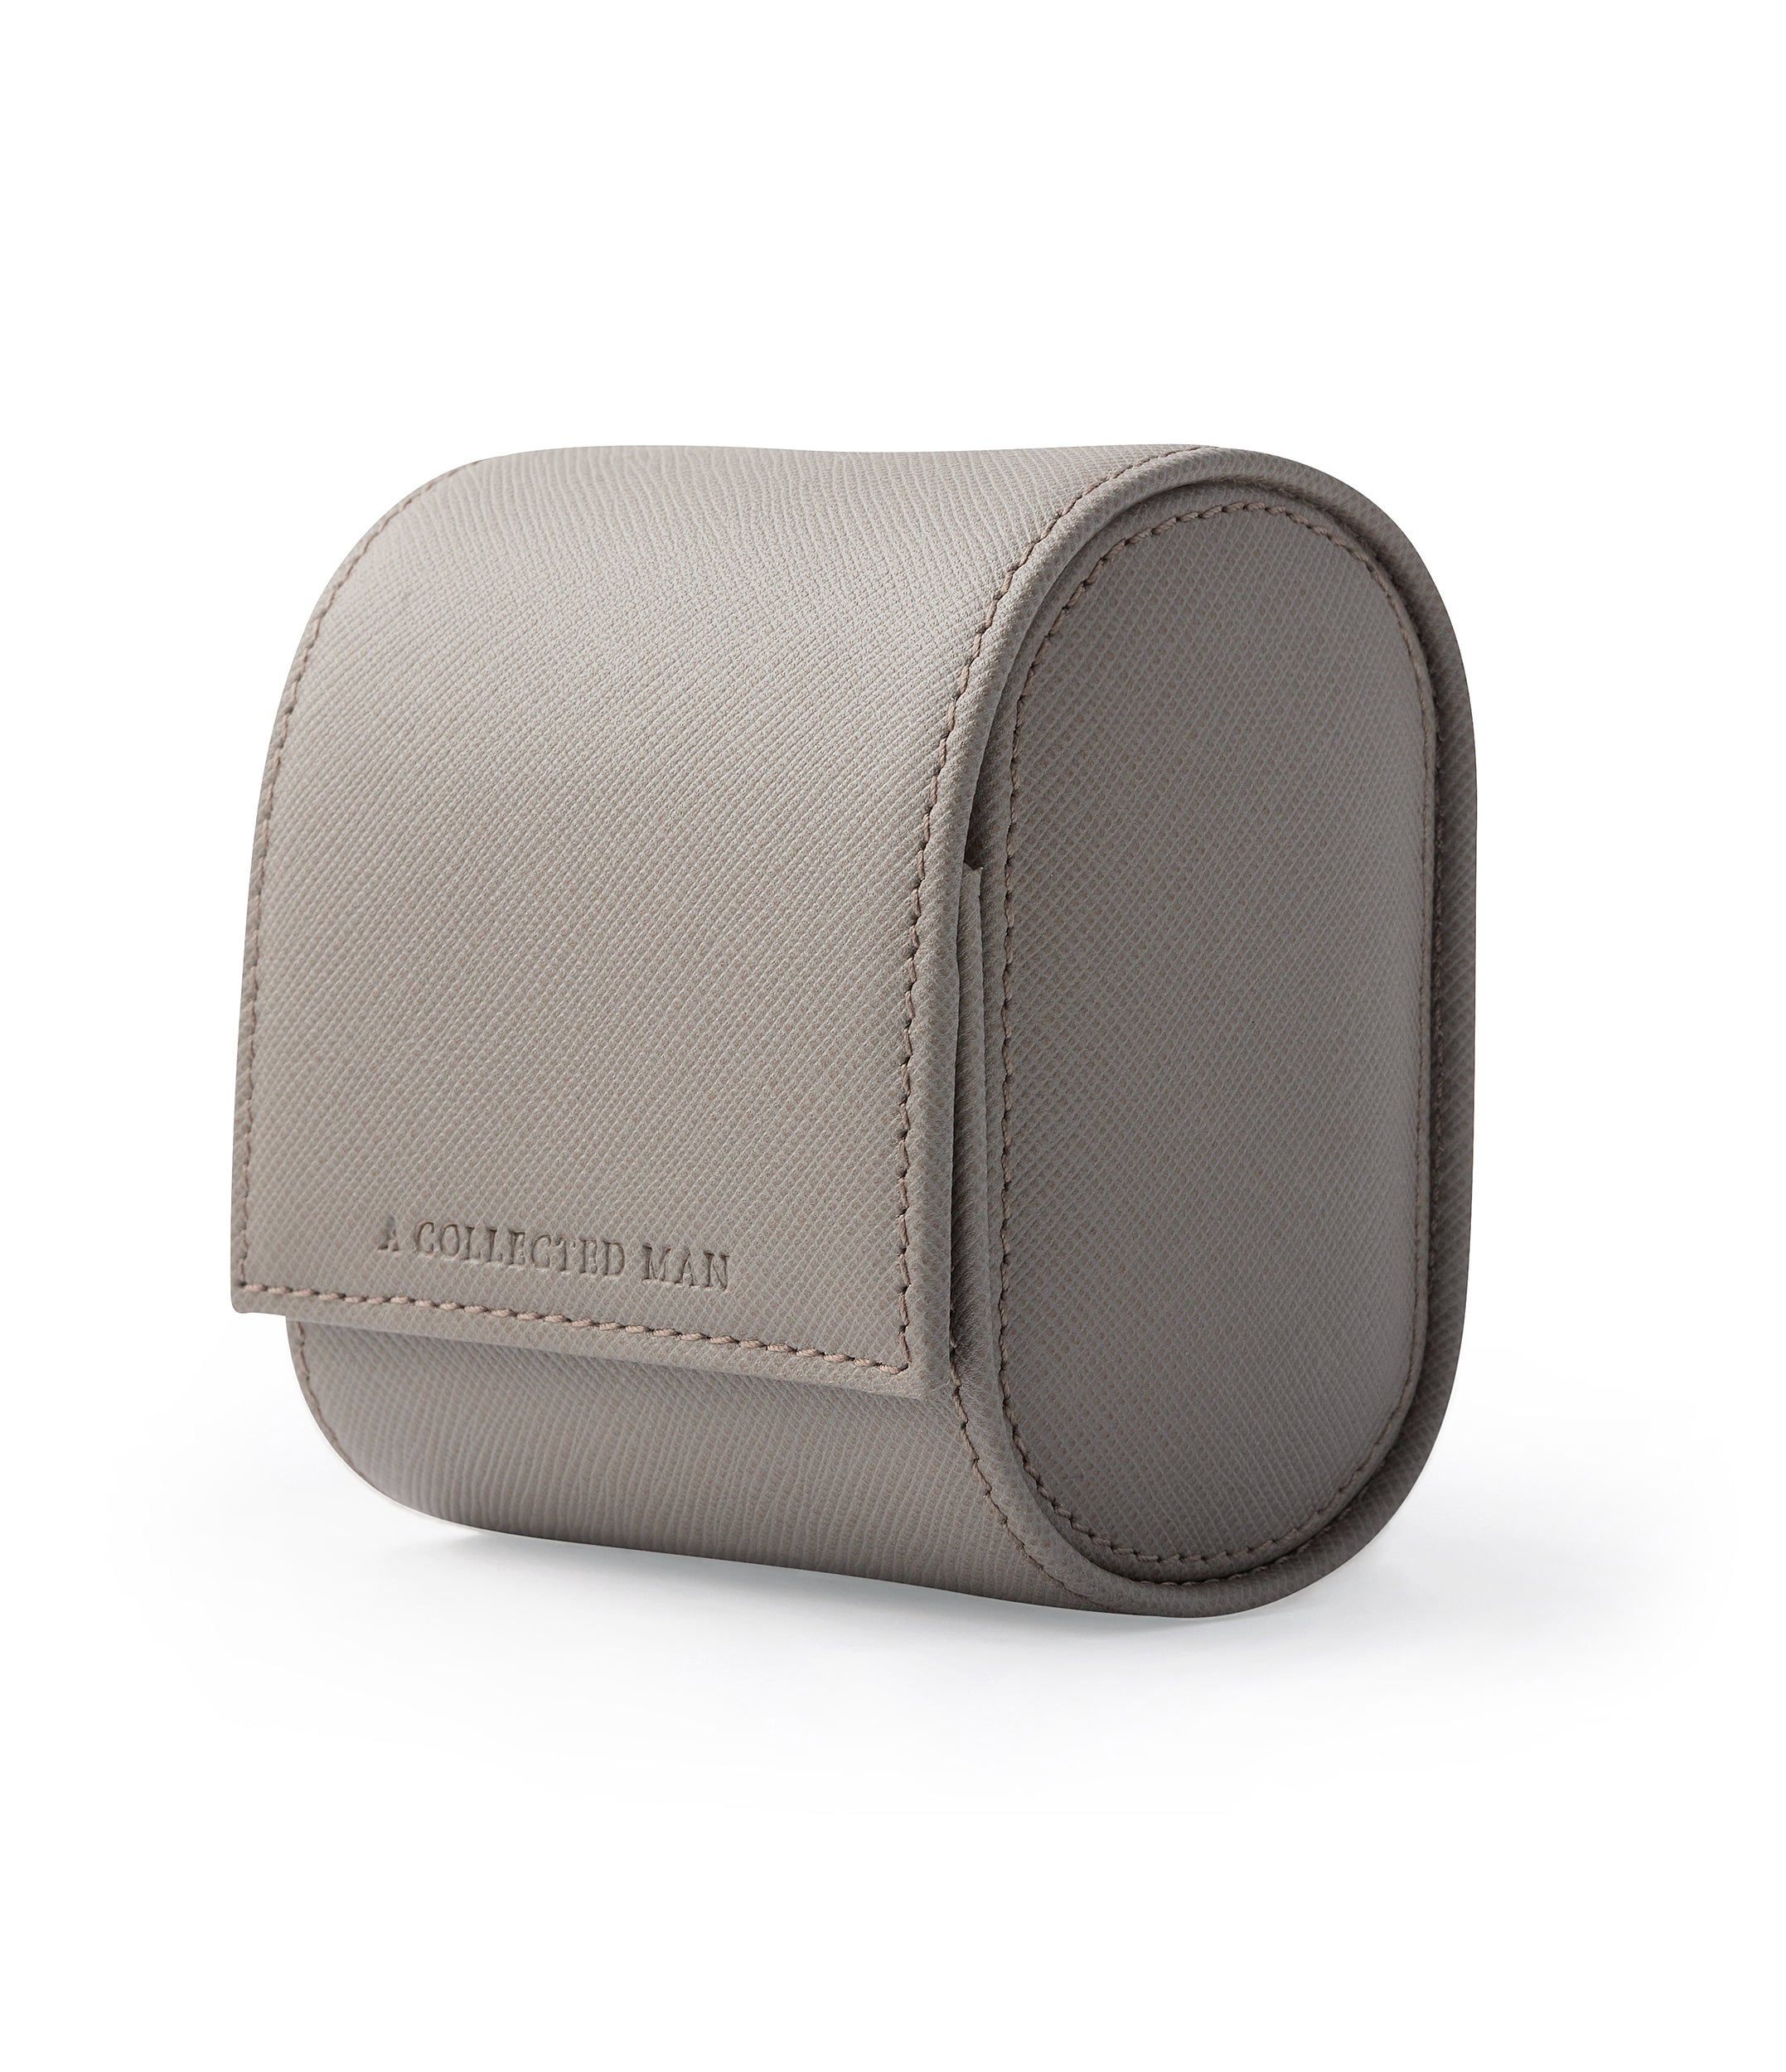 buy luxury light taupe grey Saffiano leather one-watch single watch roll holder Luxembourg Collection at A Collected Man London